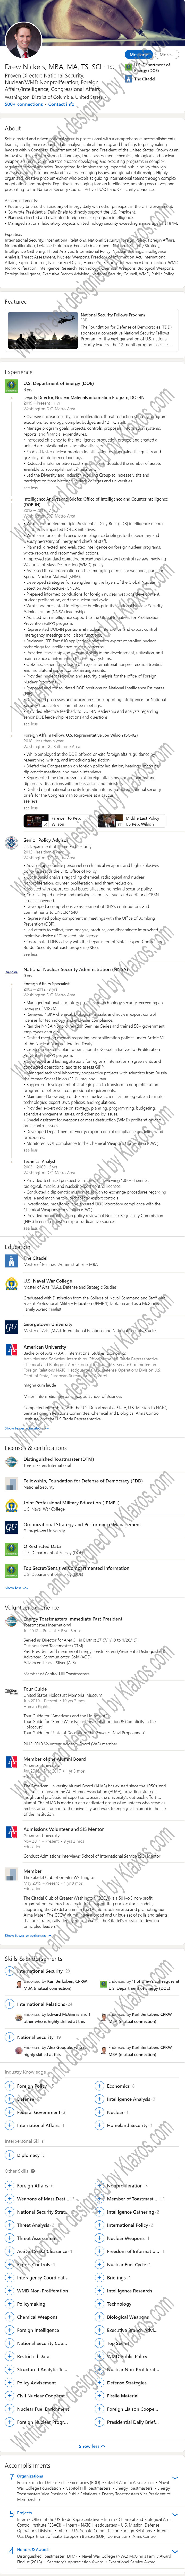 Sample LinkedIn profile example government administration energy national security 1902